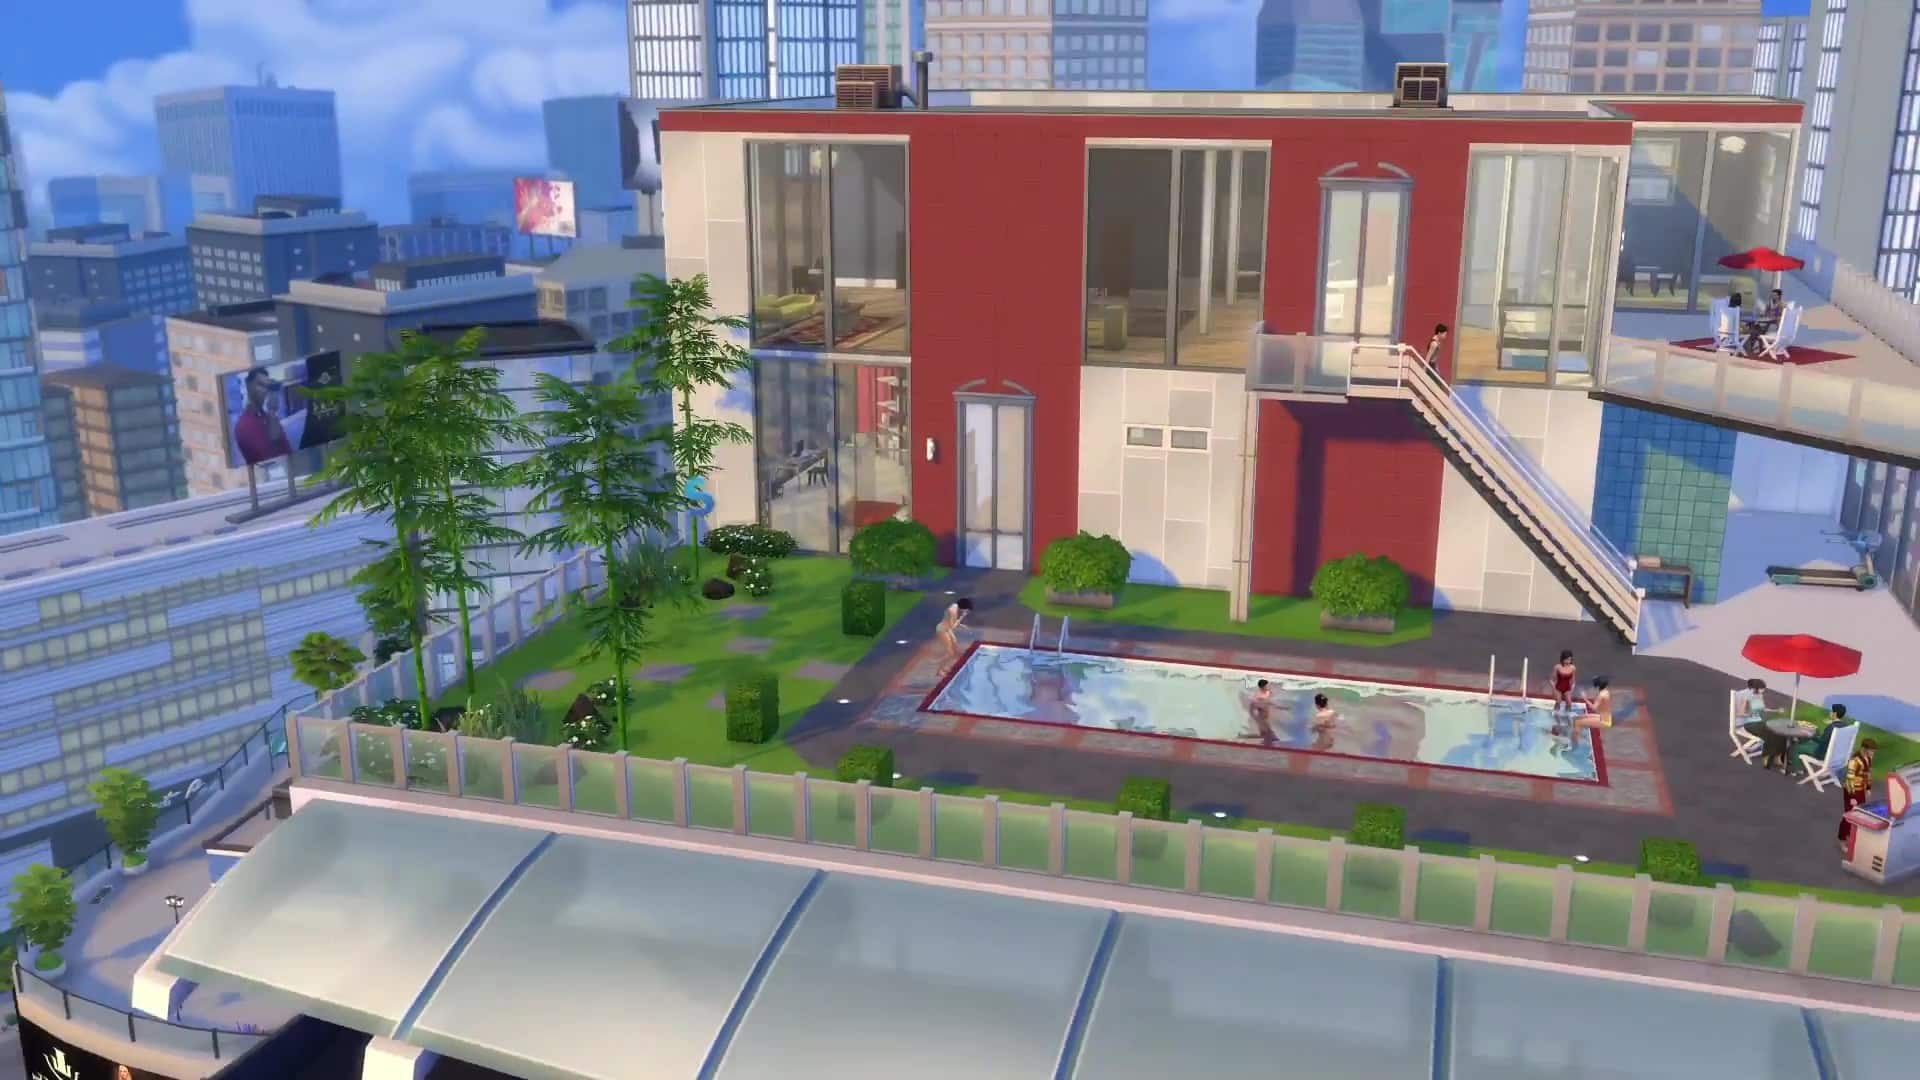 The Sims 4 City Living 114 Screens From The Trailer